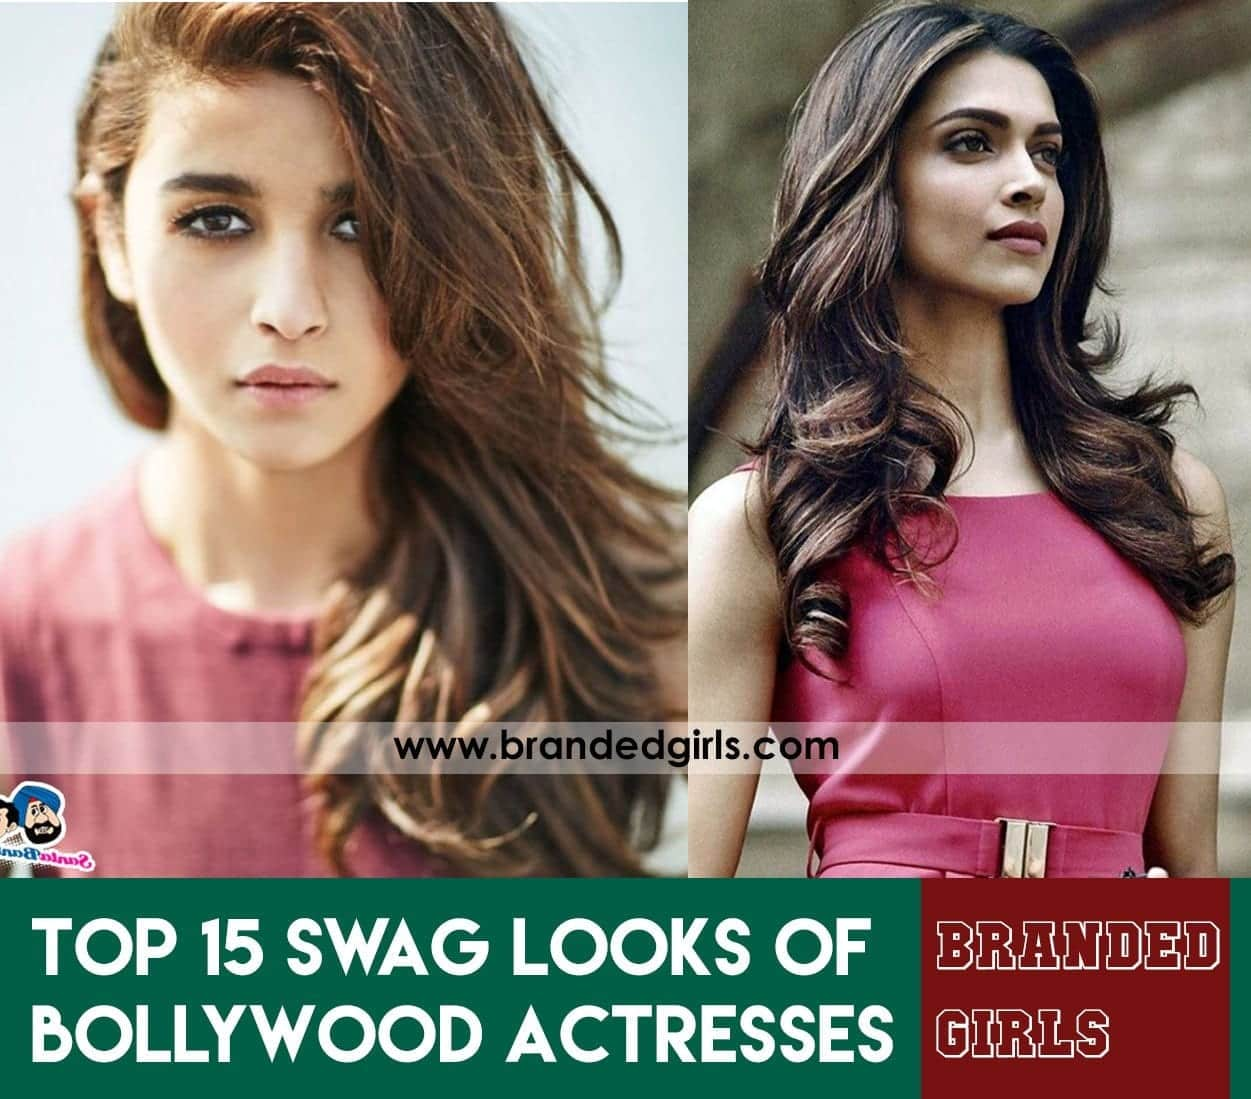 polyvore-sample-4 Bollywood Actresses Swag-15 Best Swag Looks of Bollywood Actresses